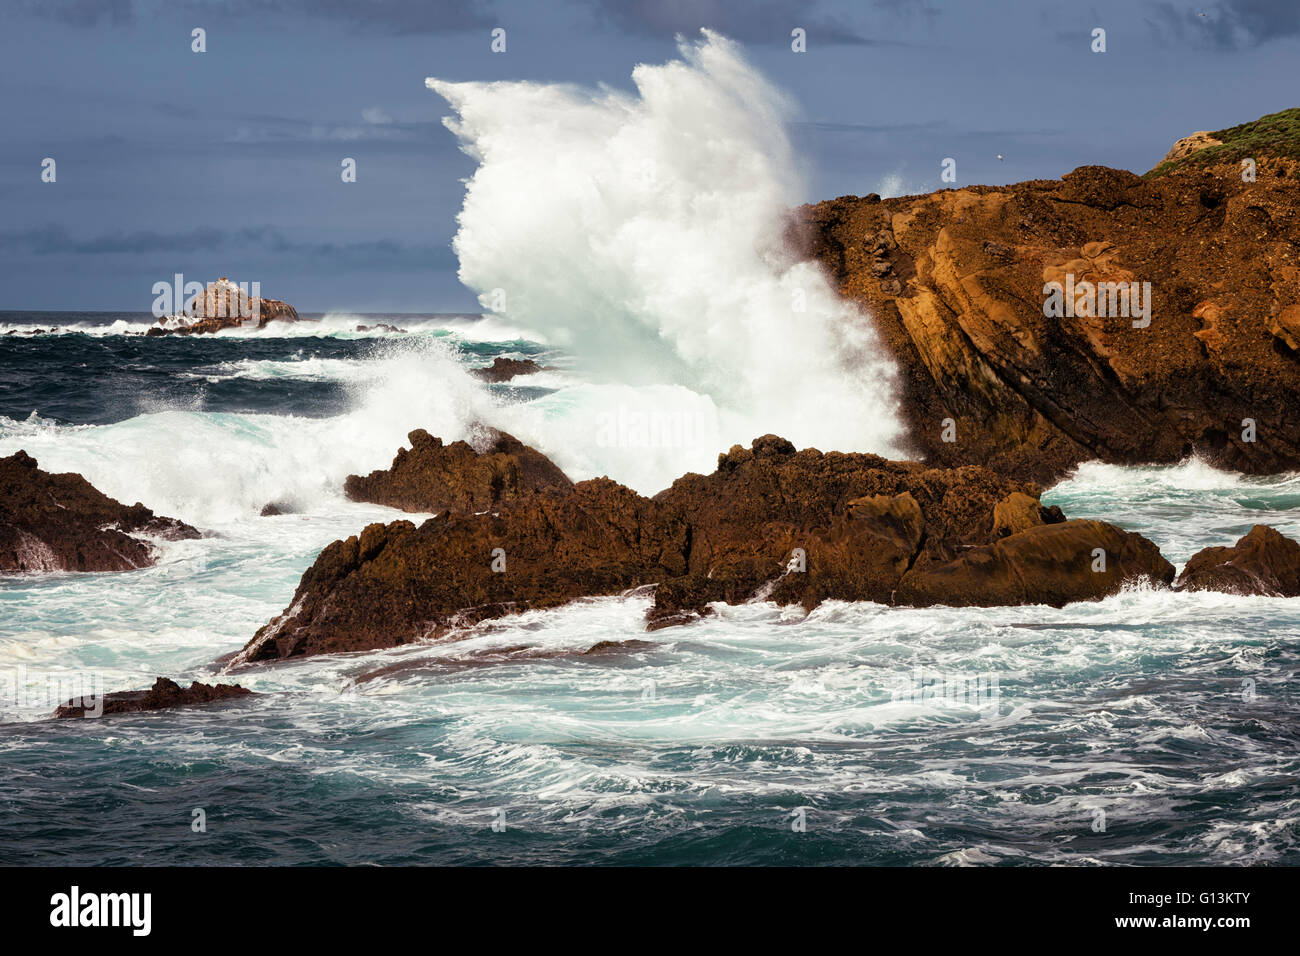 Large swells and heavy surf pound the cliffs at Point Lobos State Natural Reserve on California's Big Sur coastline. - Stock Image